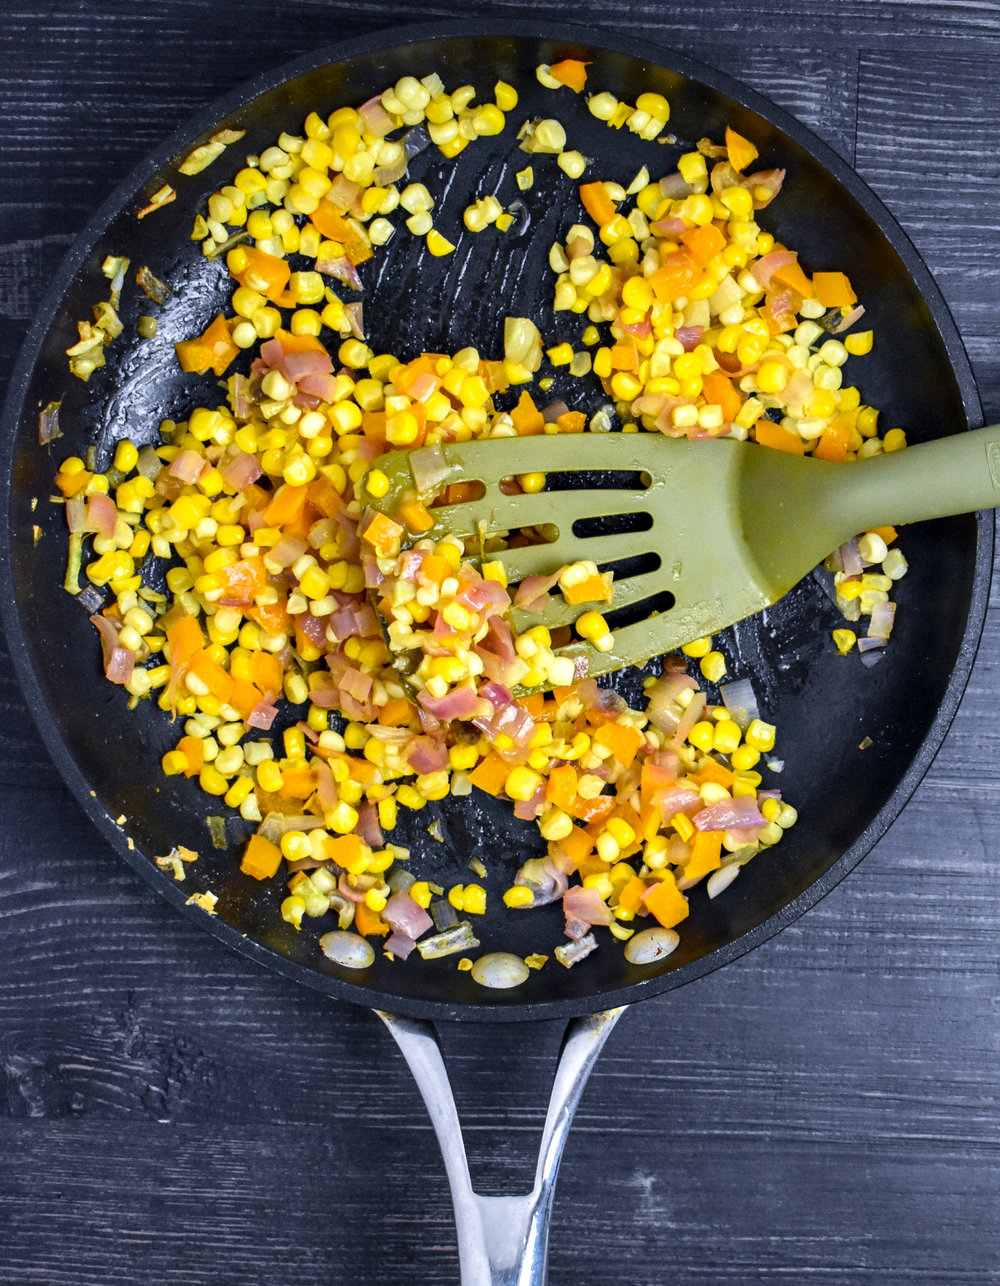 1. Start by adding vegan butter, shallots, and garlic for lime corn to the medium frying pan over medium heat. Cook for 2 minutes. Add in peppers. Cook for 2 minutes. Add in corn, lime juice, and spices. Cook for another 3-4 minutes. Set aside.